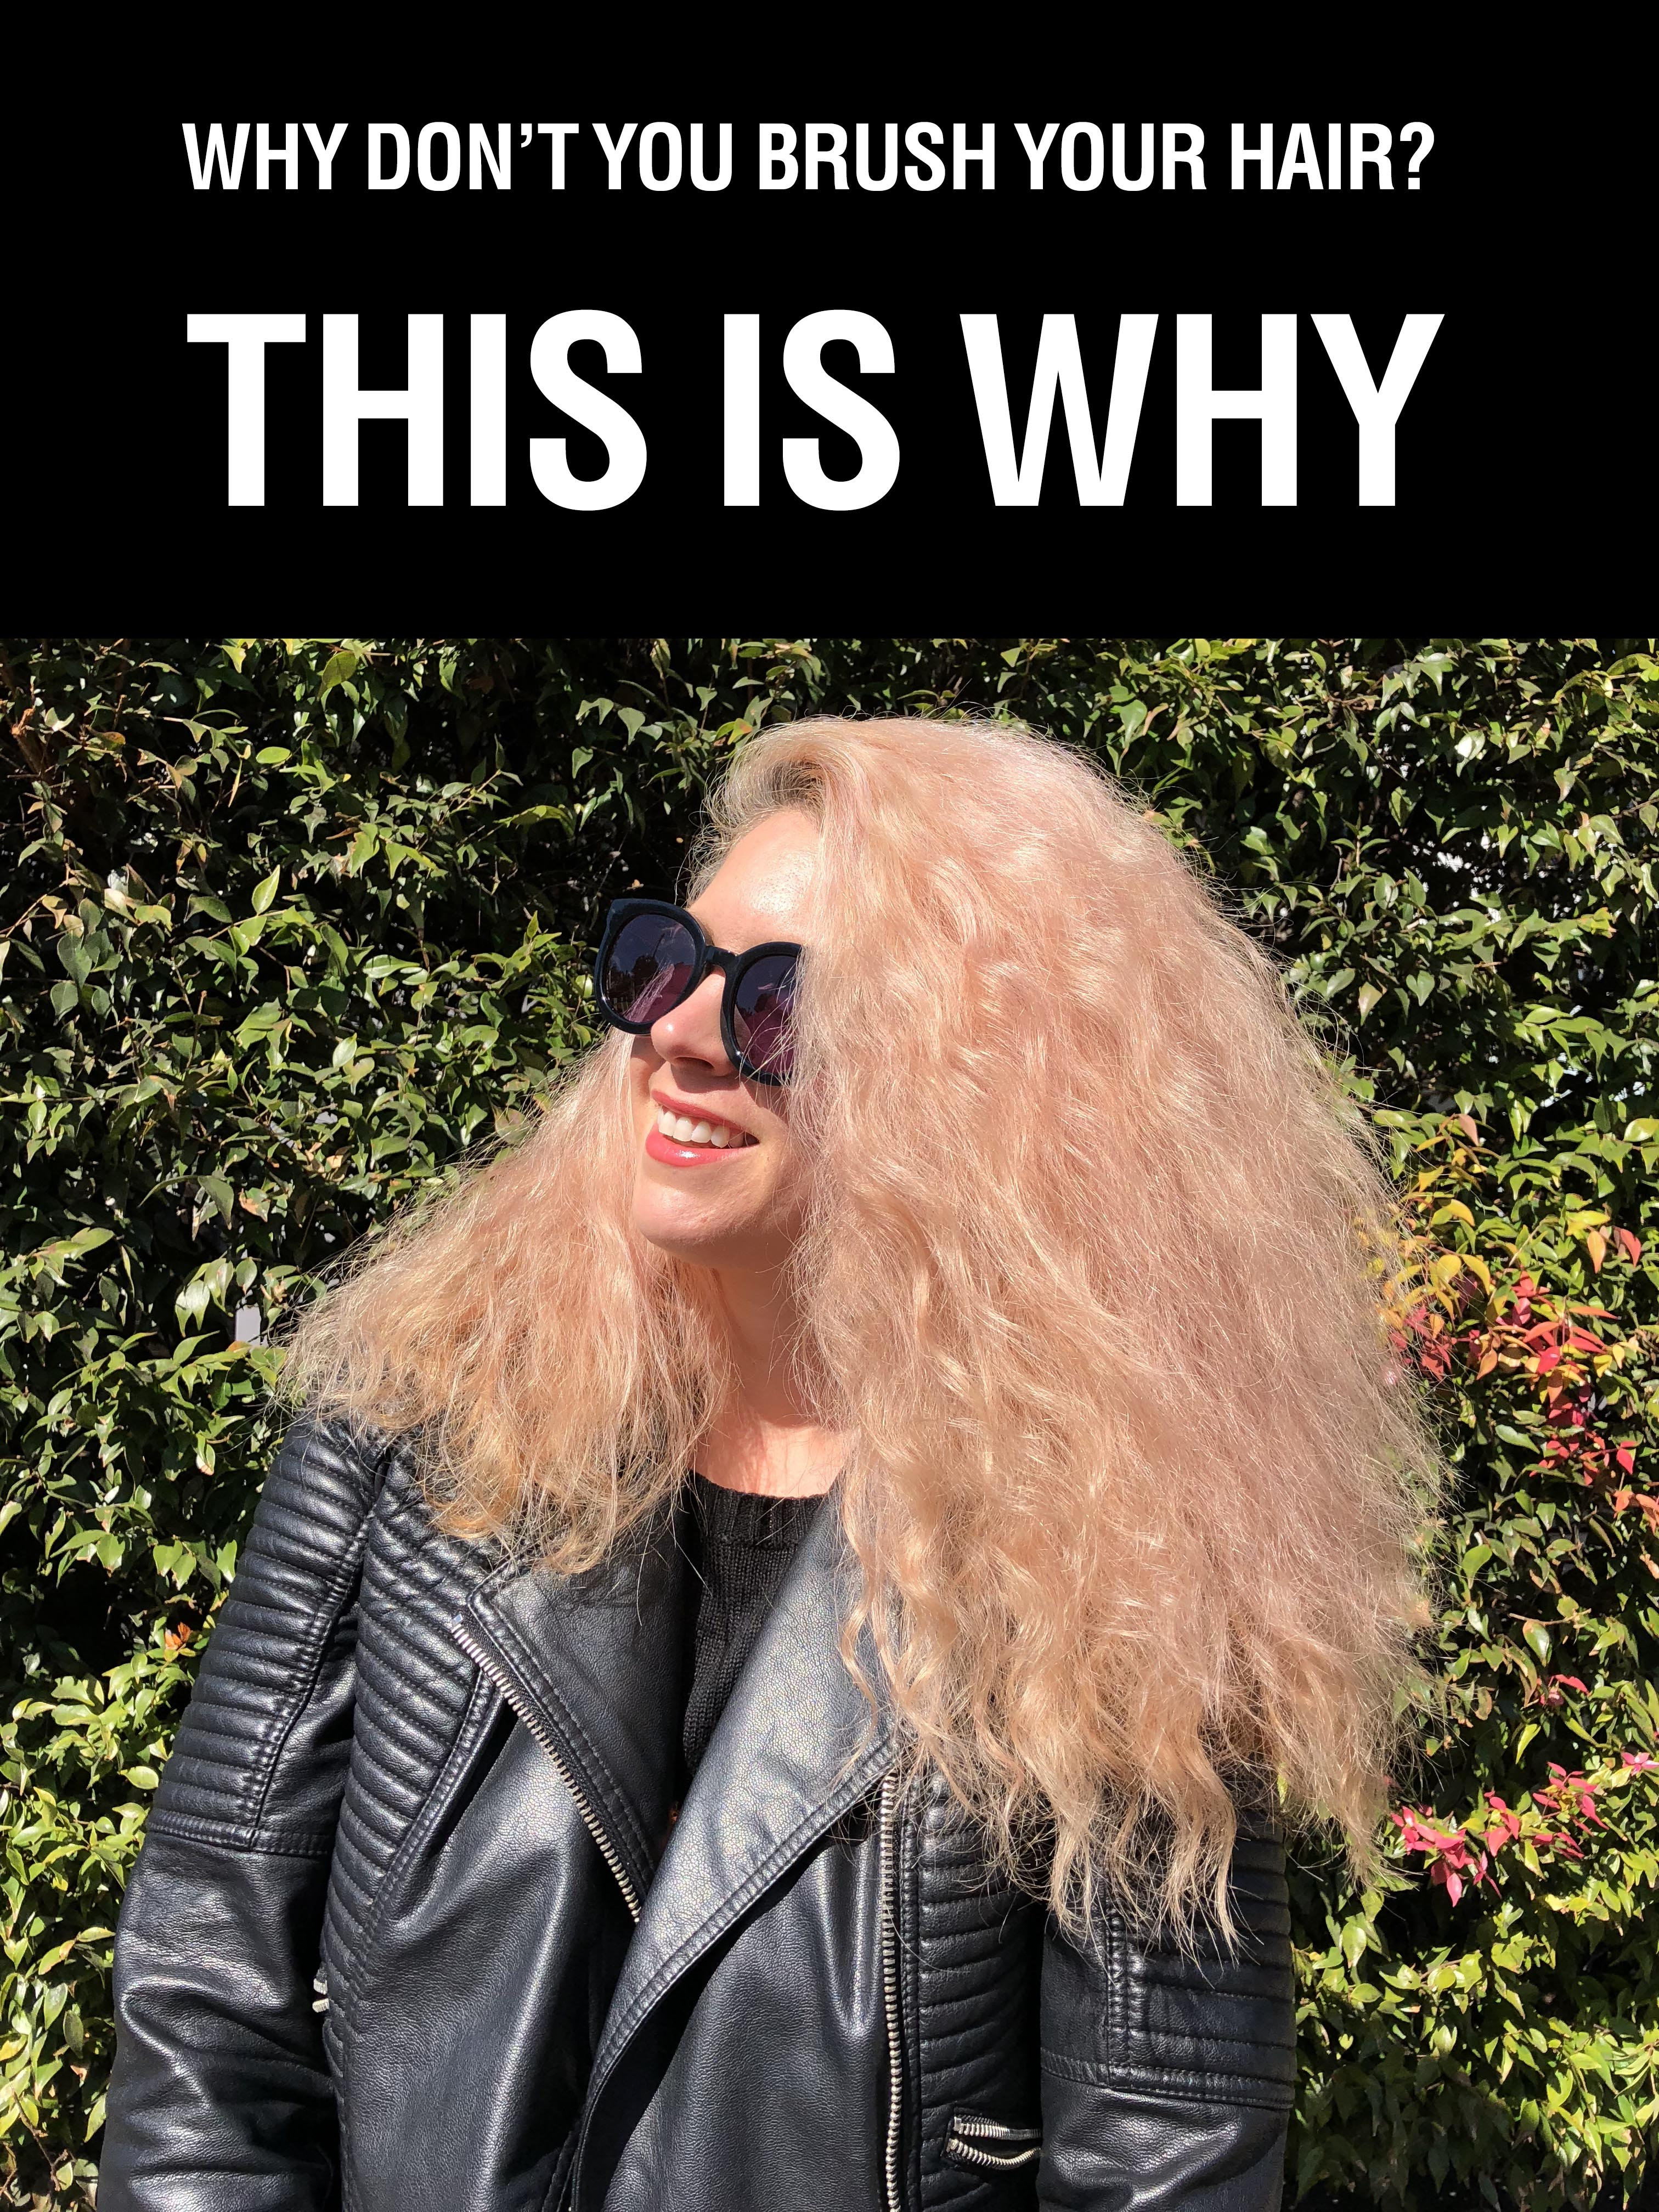 Why don't you brush your hair - Hair Romance